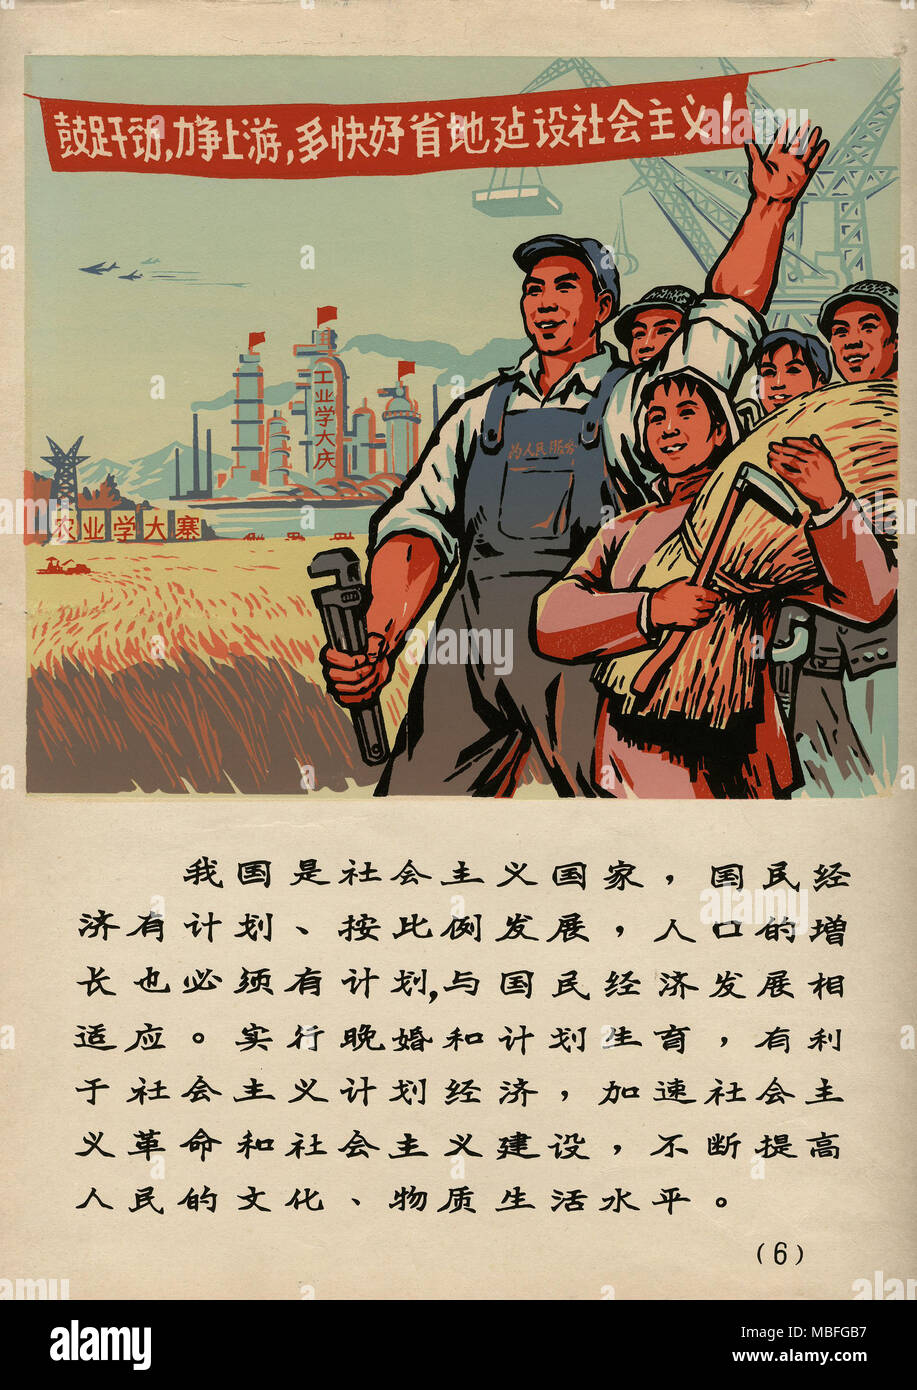 Farmers & Workers support Communism - Stock Image